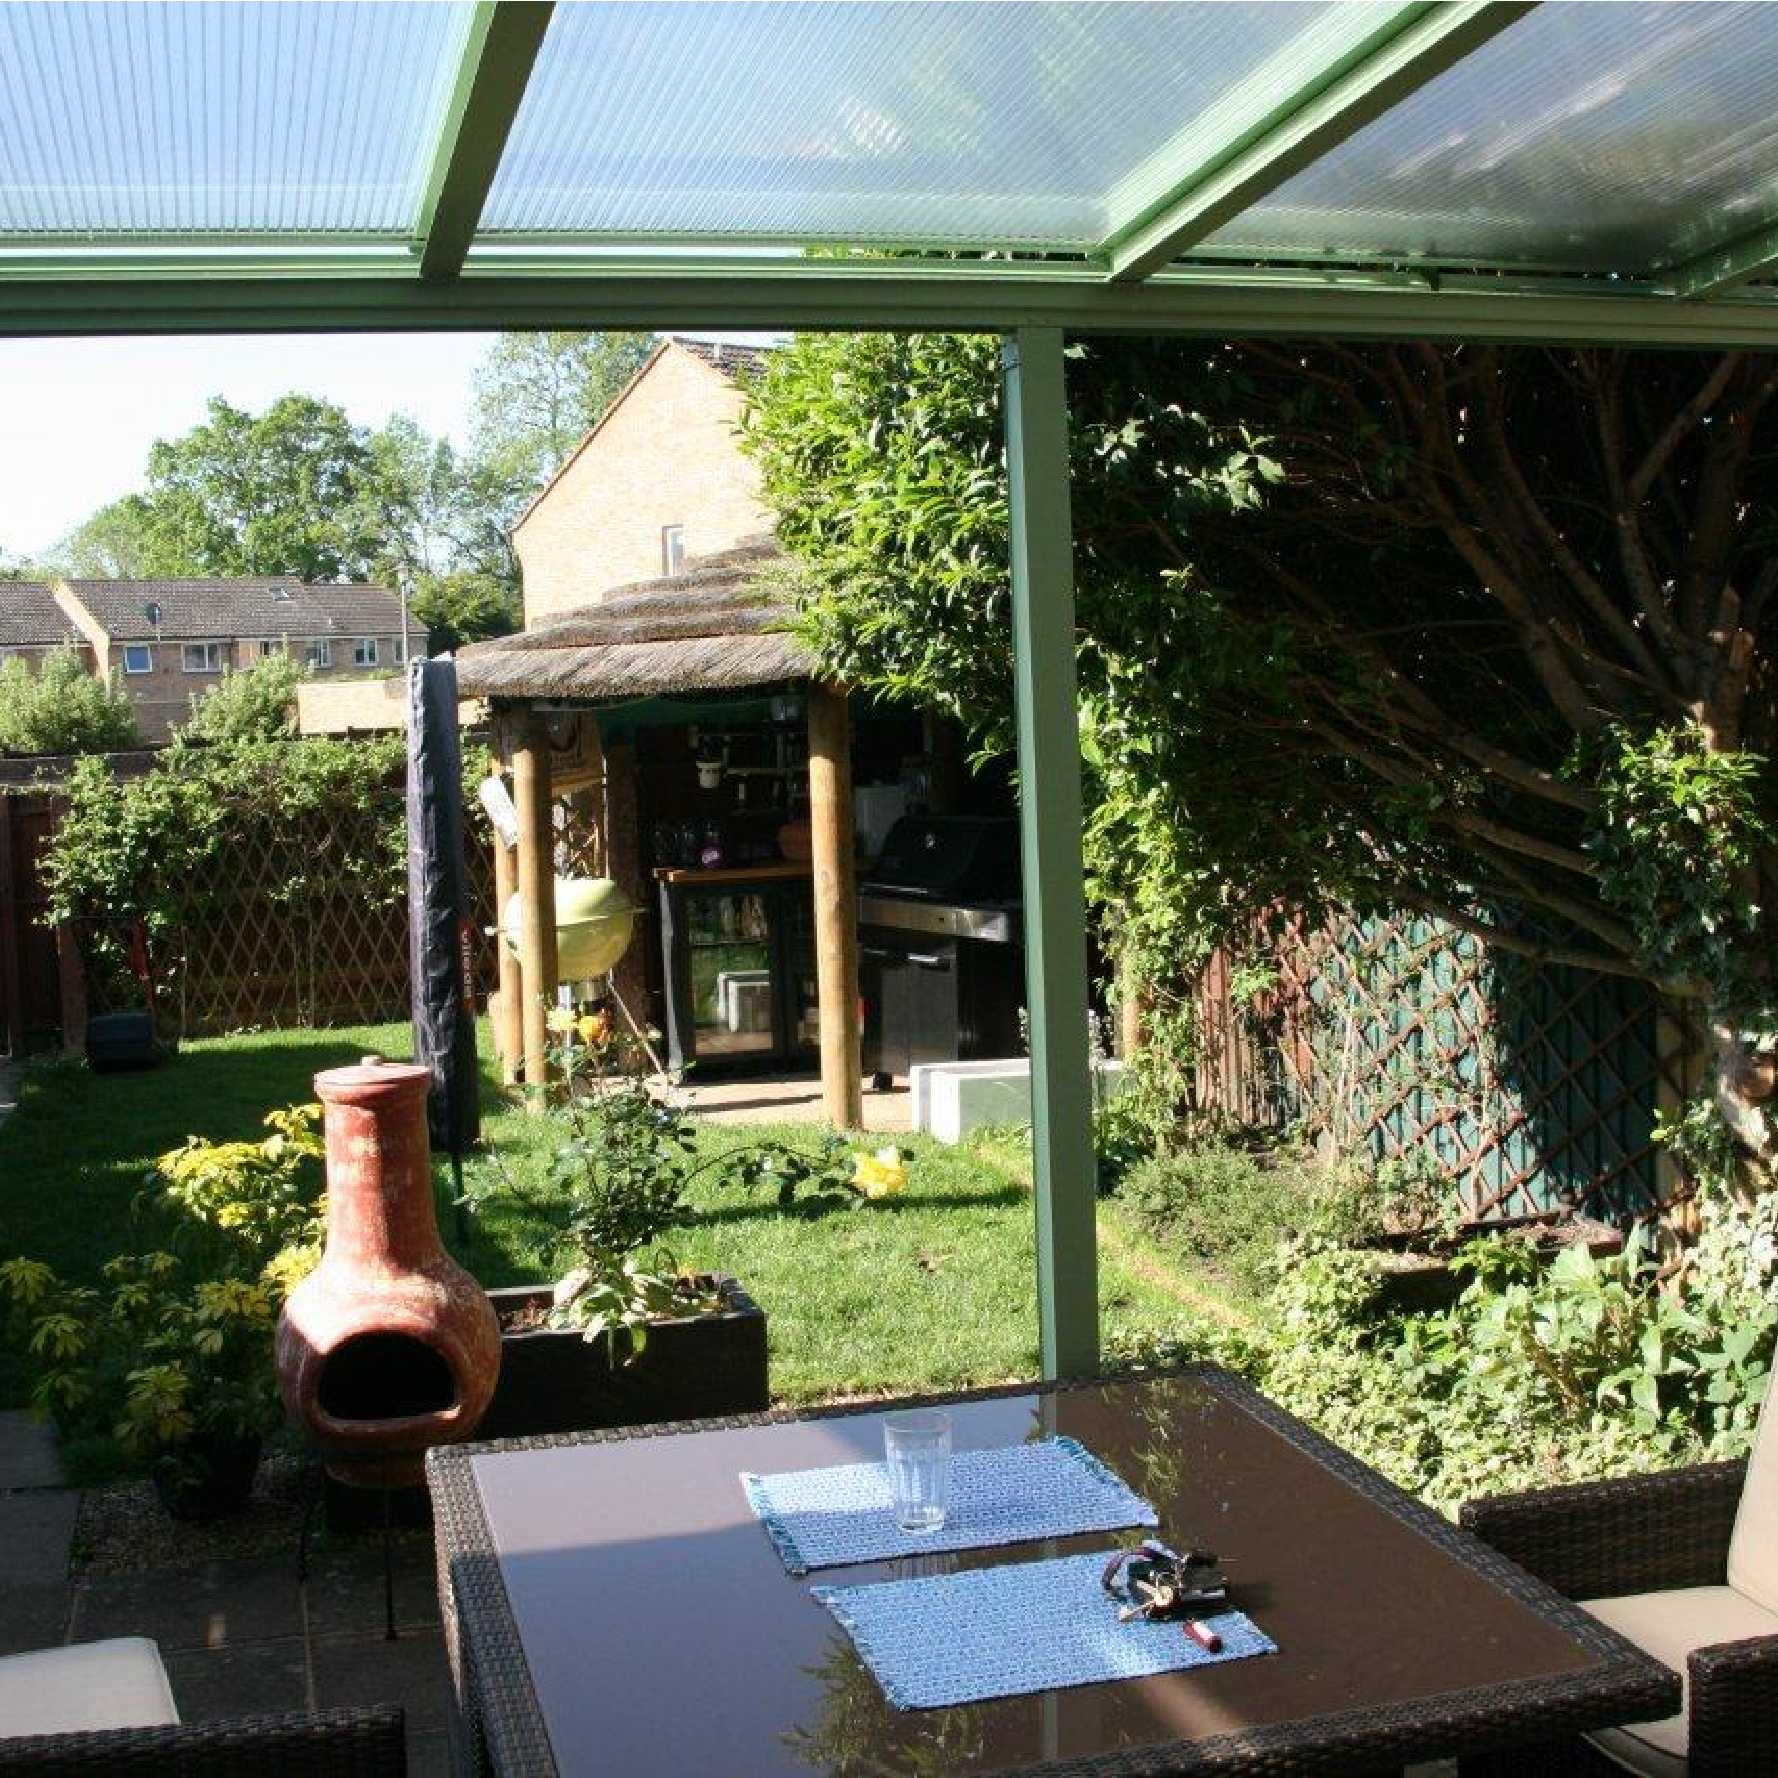 Affordable Omega Smart White Lean-To Canopy with 16mm Polycarbonate Glazing - 10.6m (W) x 3.0m (P), (5) Supporting Posts